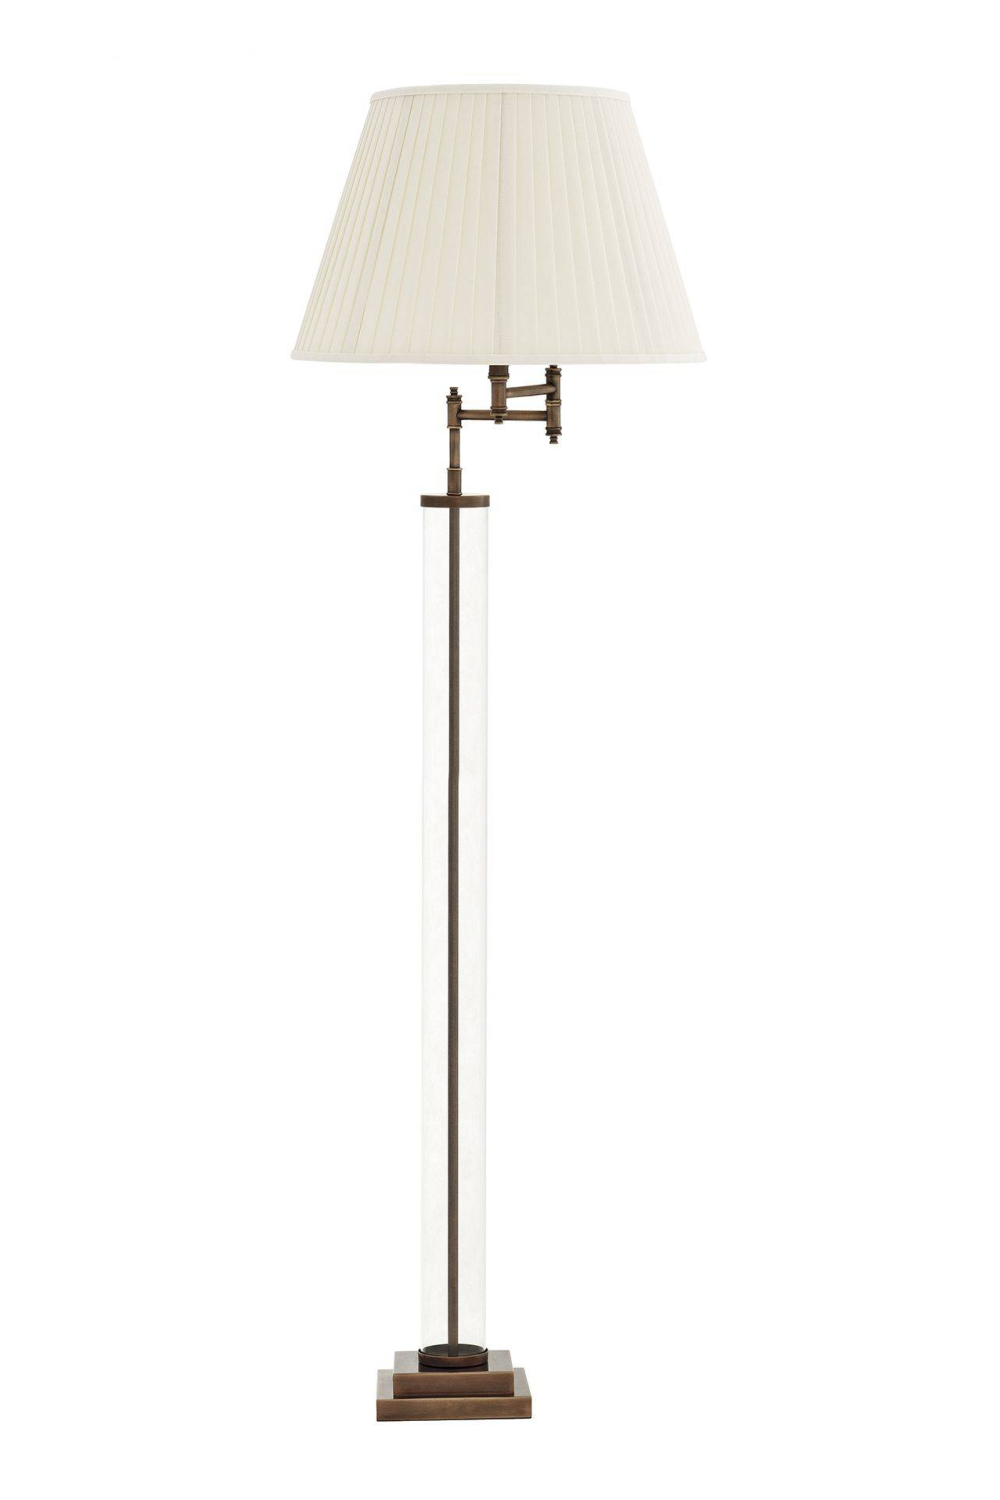 Adjustable Brass Floor Lamp | Eichholtz Beaufort |  #1 Eichholtz Retailer